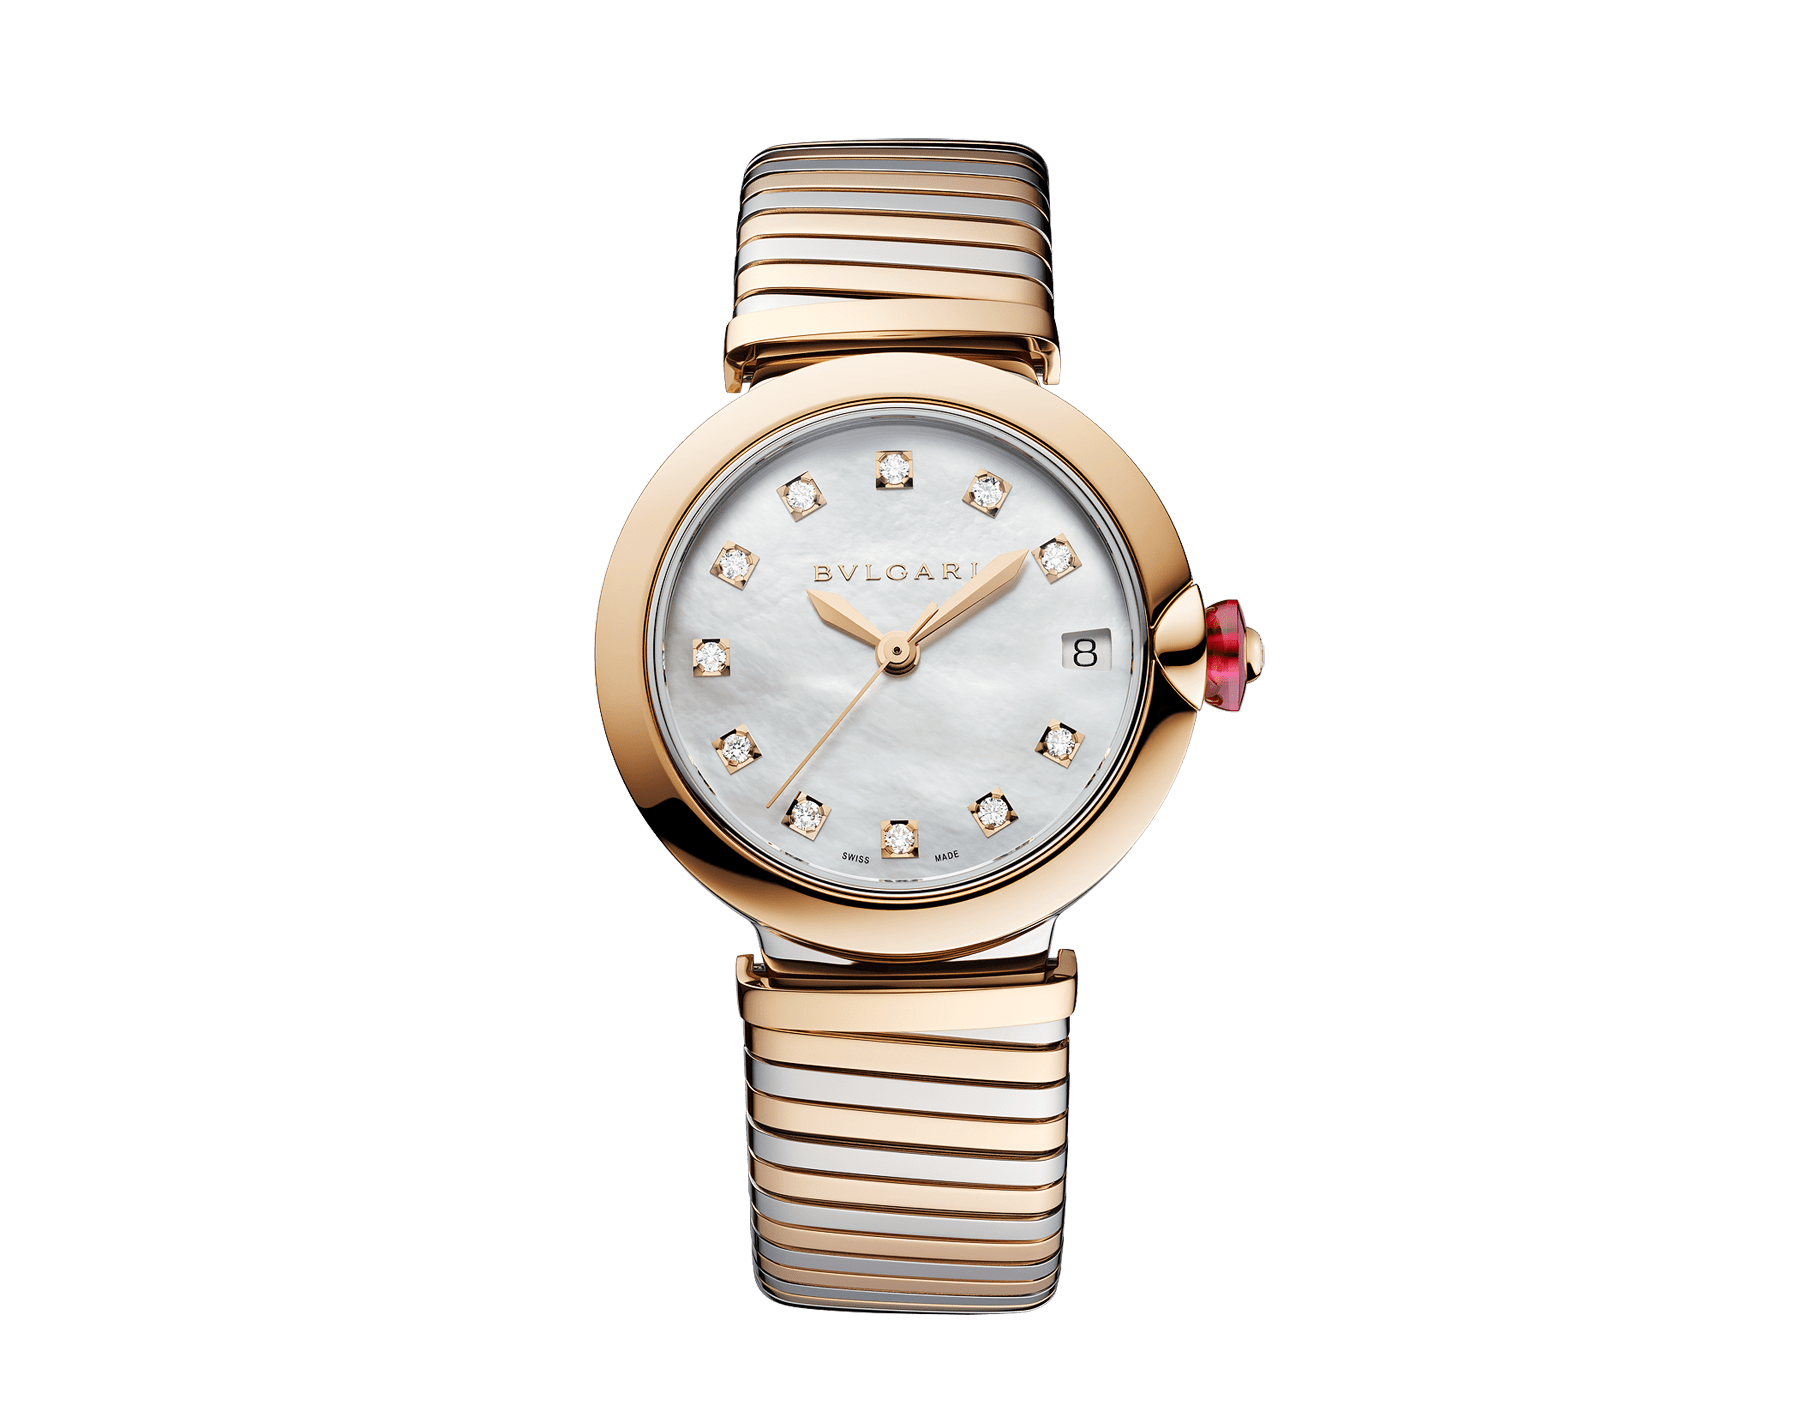 LVCEA Tubogas watch in 18 kt rose gold and stainless steel case and tubogas bracelet, with white mother-of-pearl dial and diamond indexes 102954 image 1